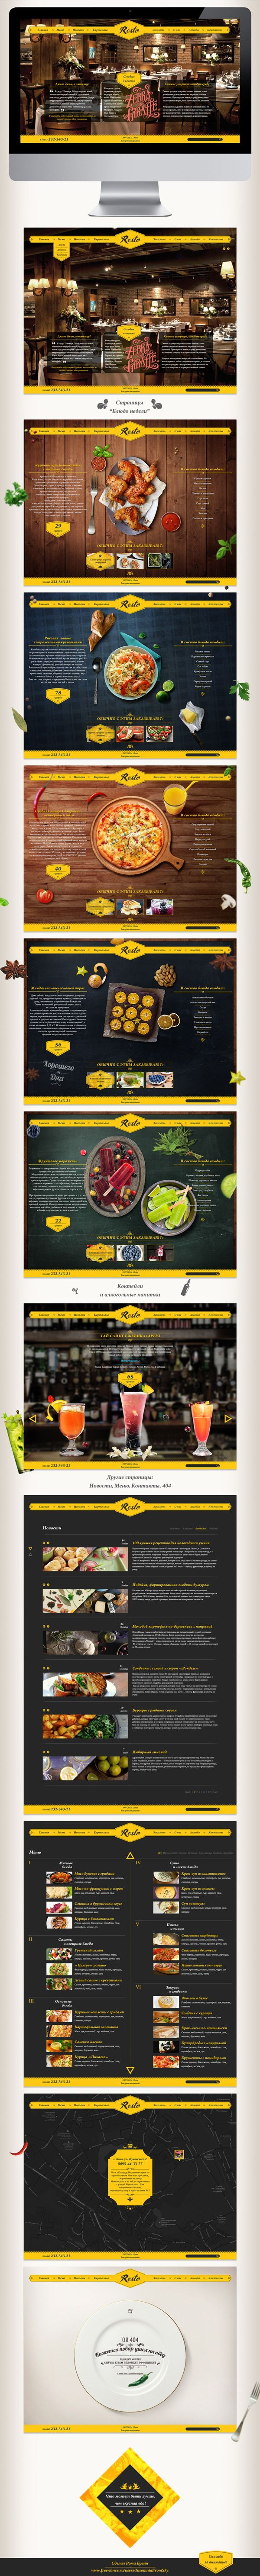 Website Inspiration - October 2013